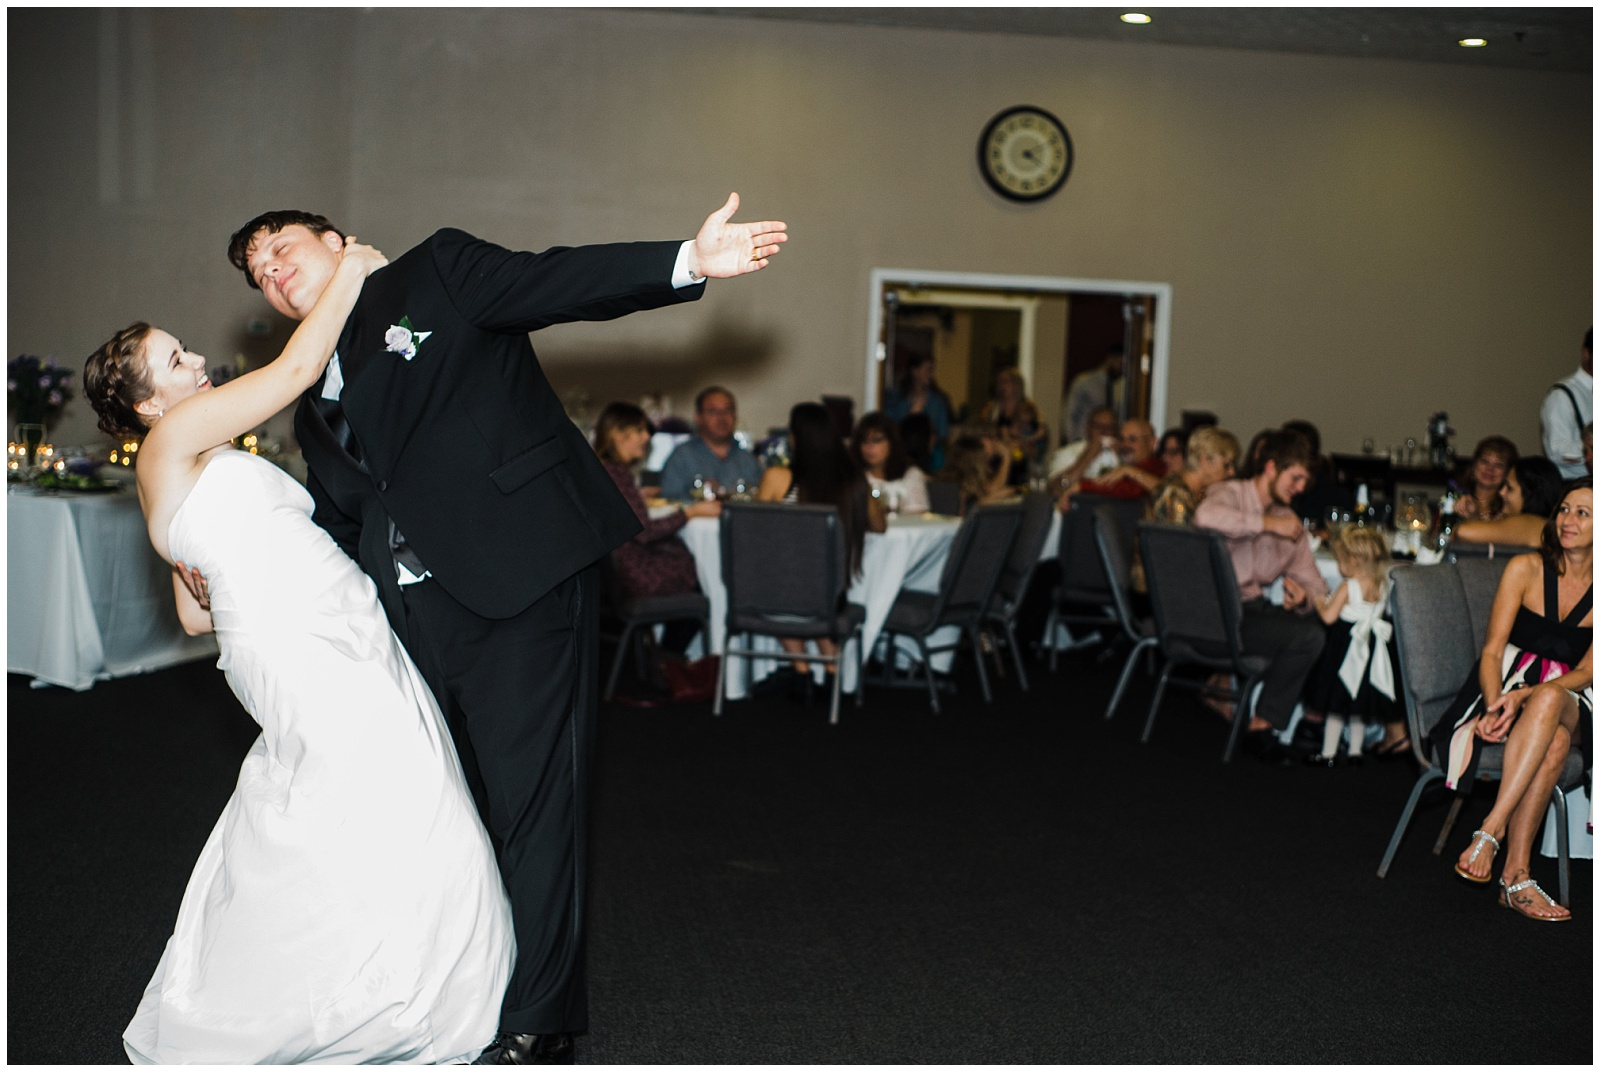 The first dance…filled with so much love …and humor! hehe